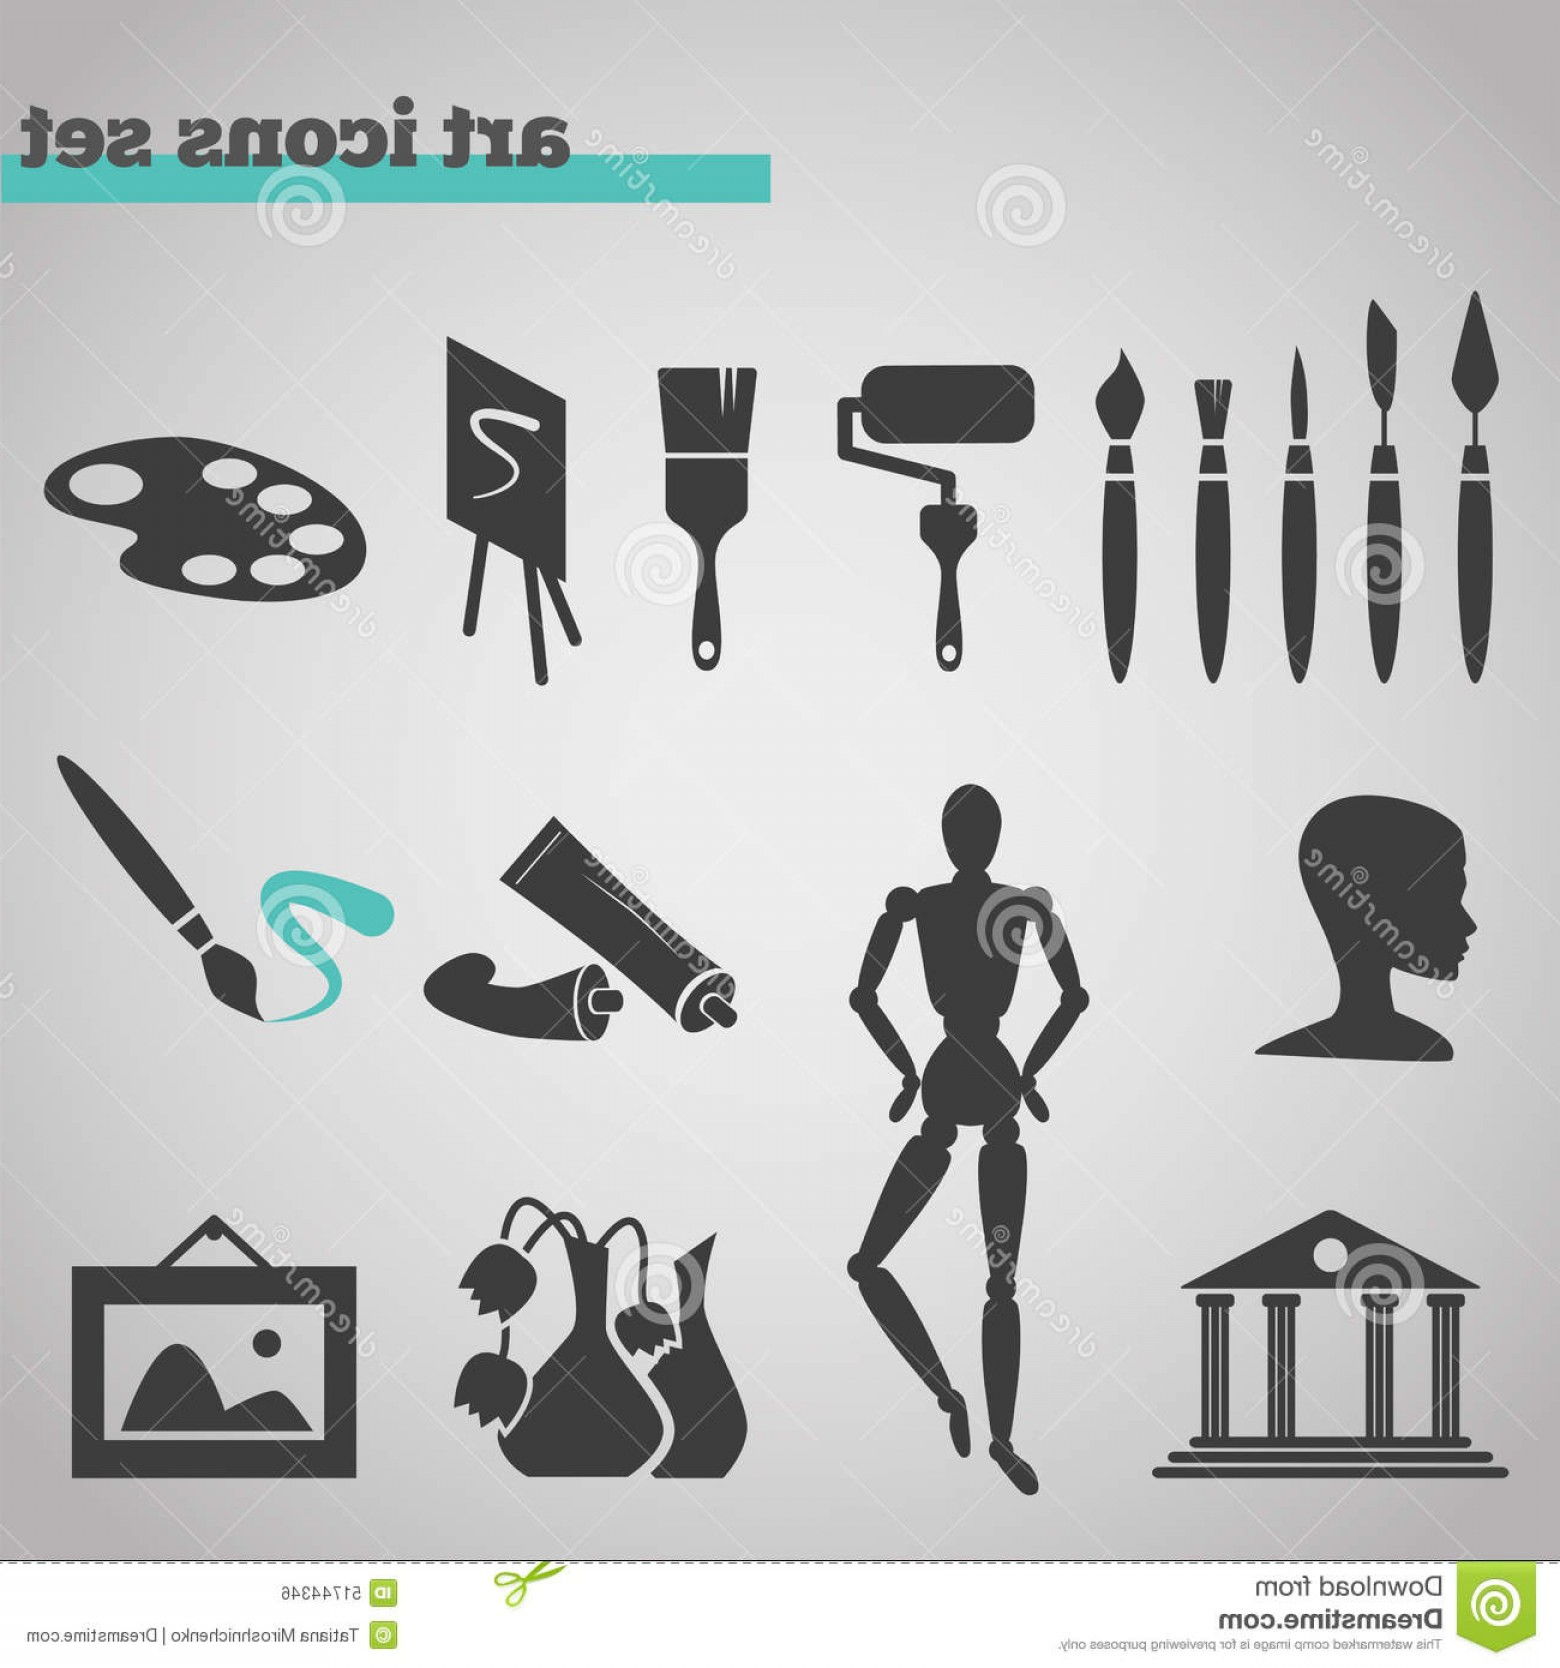 Supplies Vector Graphic: Stock Illustration Icons Set Art Supplies Painting Vector Illustration Instruments Drawing Sketching Isolated Grey Background Image